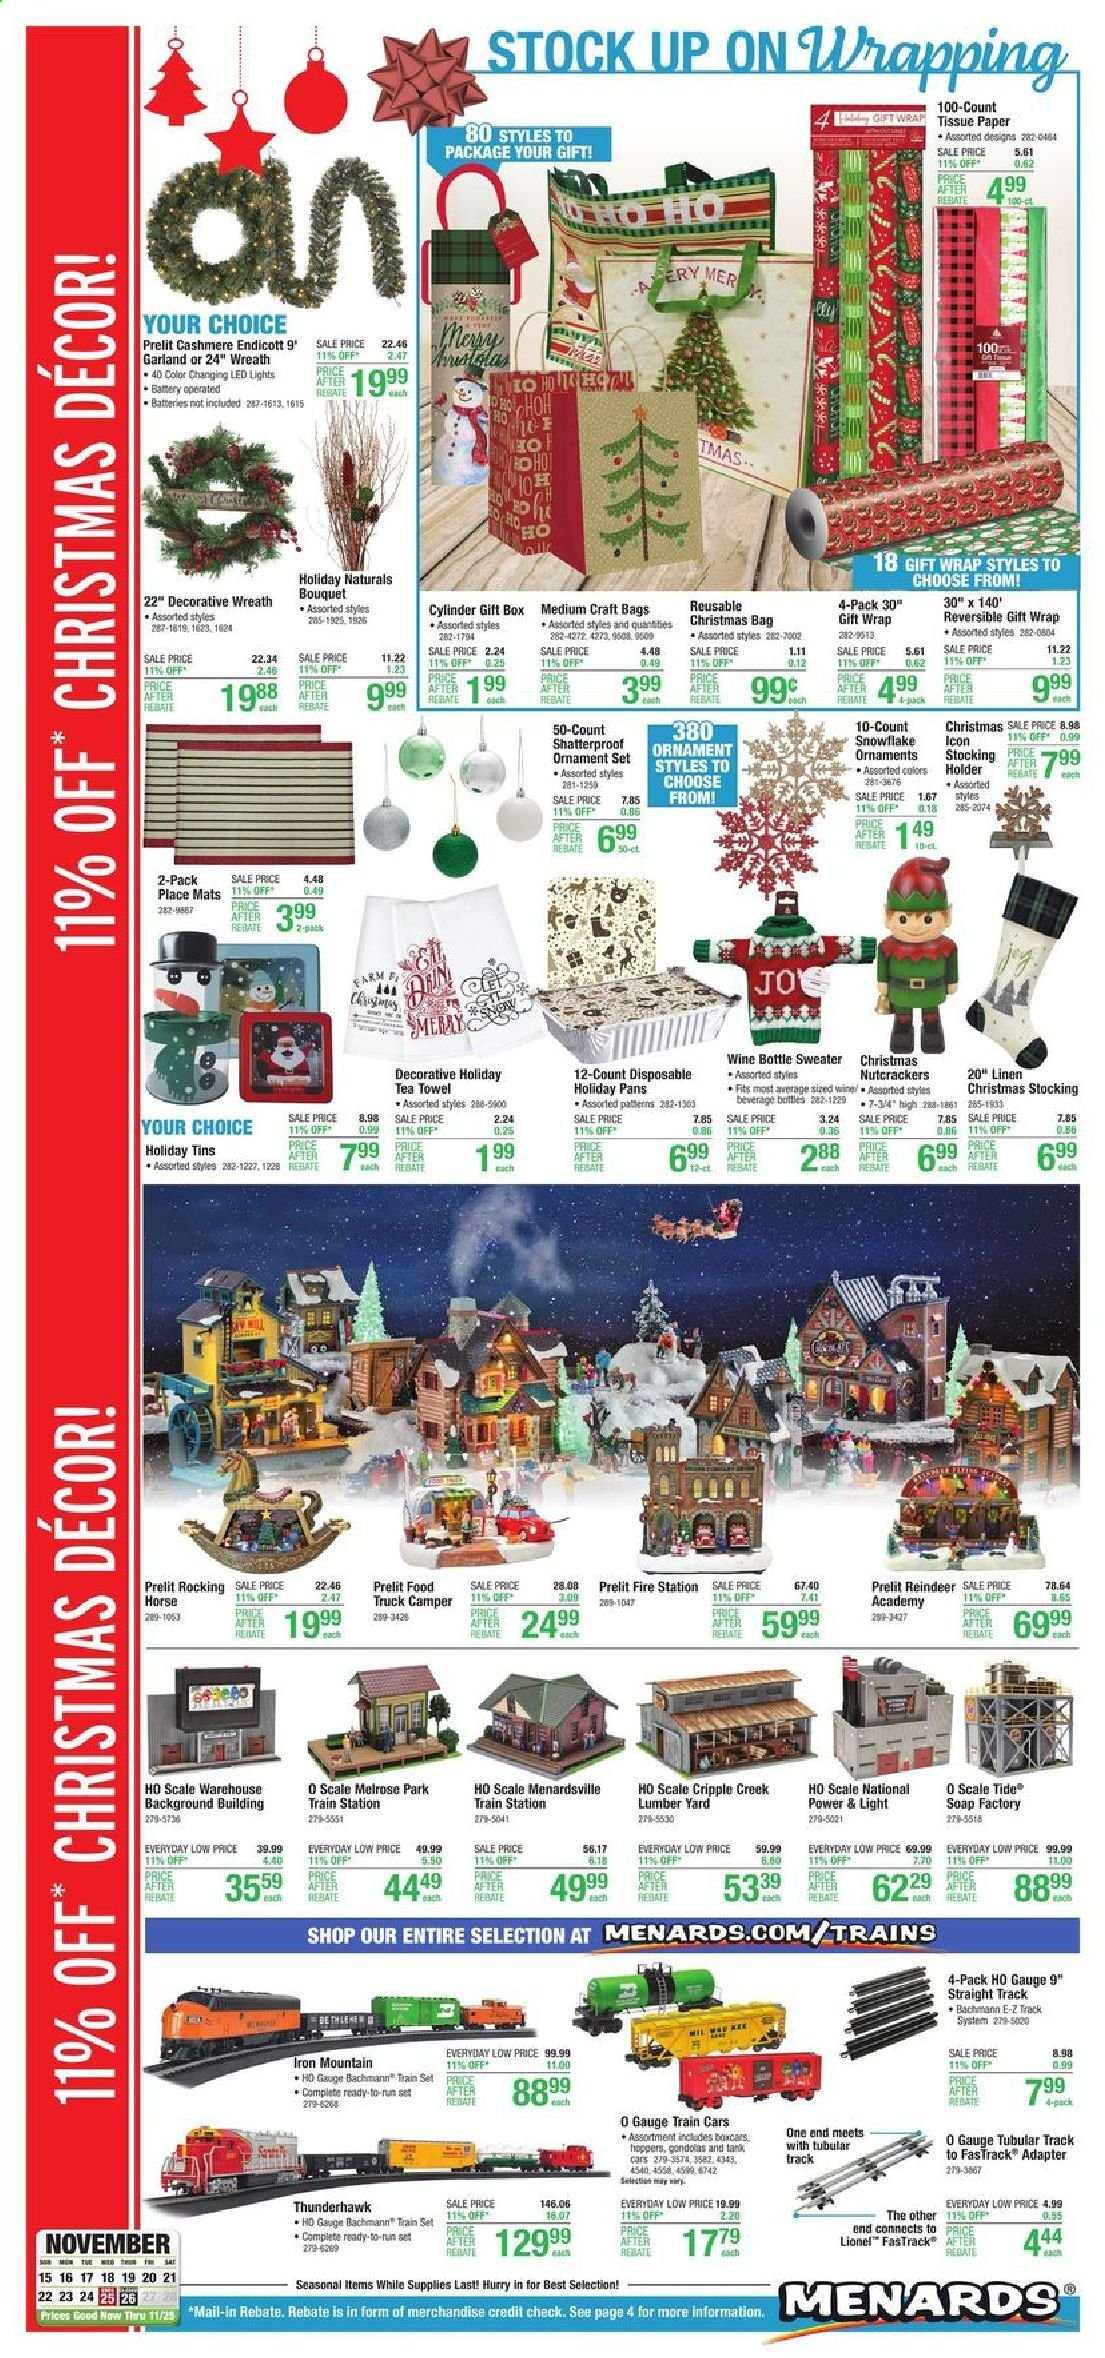 Menards Flyer - 11.15.2020 - 11.25.2020 - Sales products - bag, garland, LED light, reindeer, snowflake, sweater, tea, Tide, truck, wreath, Holder, christmas decor, iron, ornament, gift box, gift wrap, scale, wine, train, craft, led. Page 1.